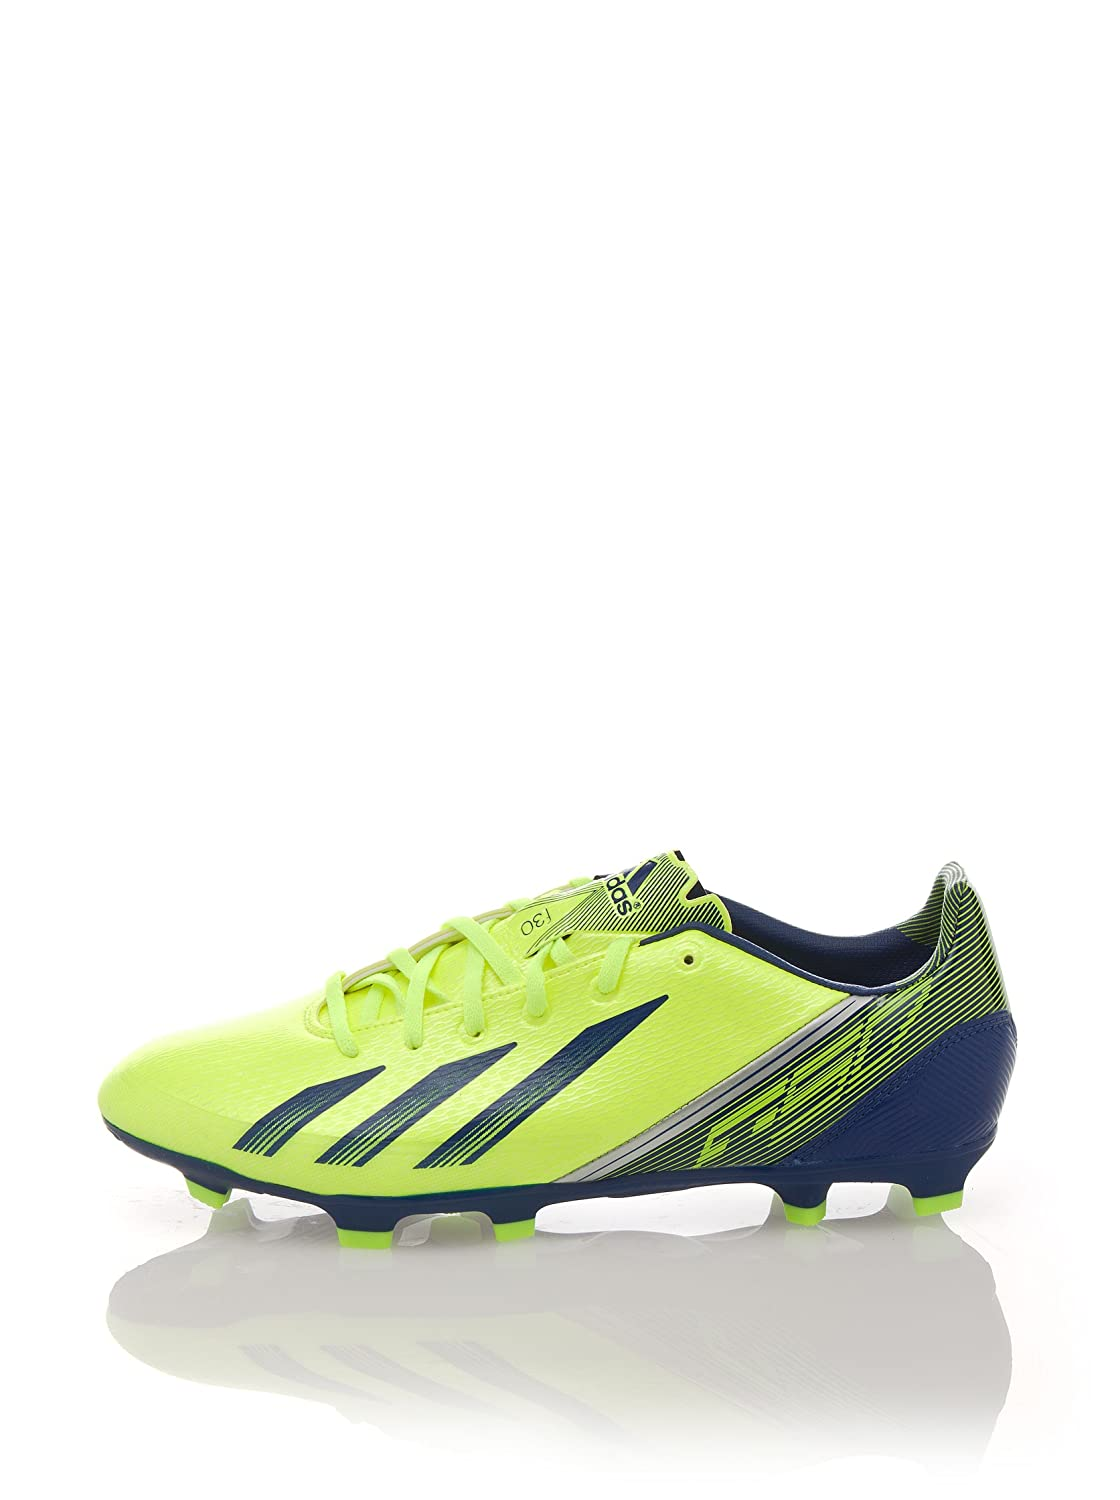 423a113c0 Amazon.com  adidas adizero F30 TRX FG mens football boots Q33894 soccer  cleats  Shoes